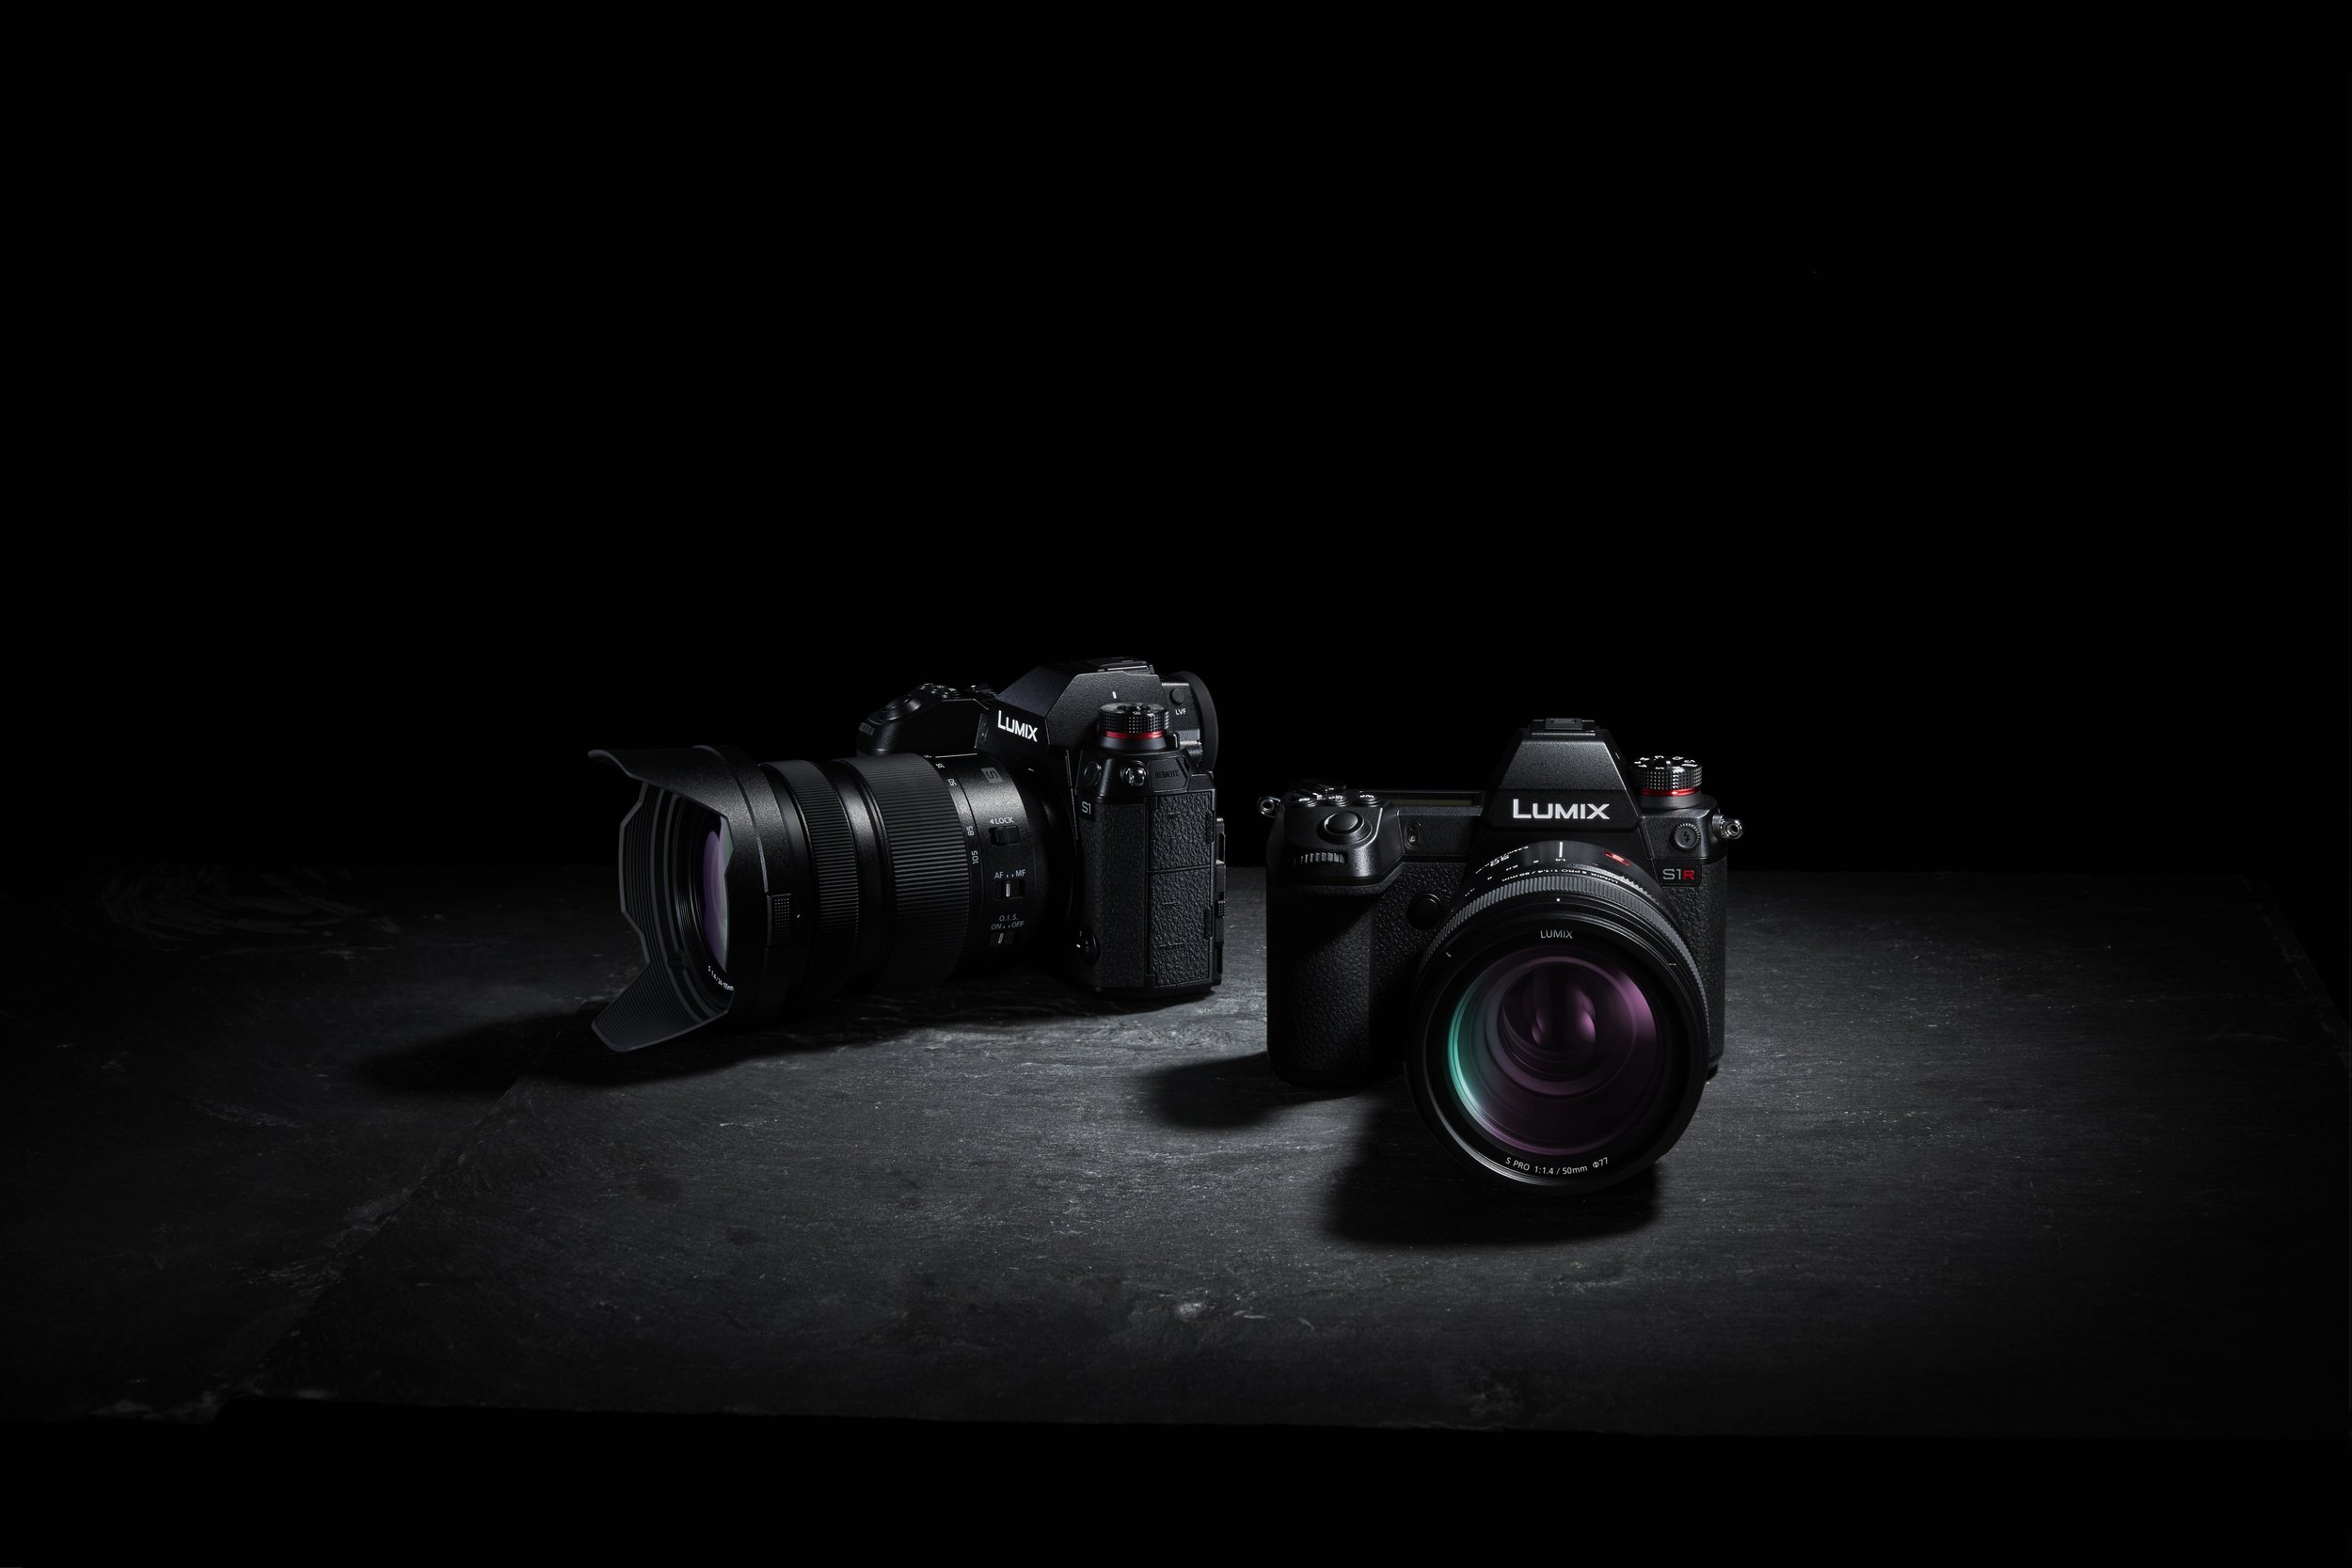 Panasonic S1 and S1R Pro Level Full Frame Mirrorless Cameras with Leica L Mount